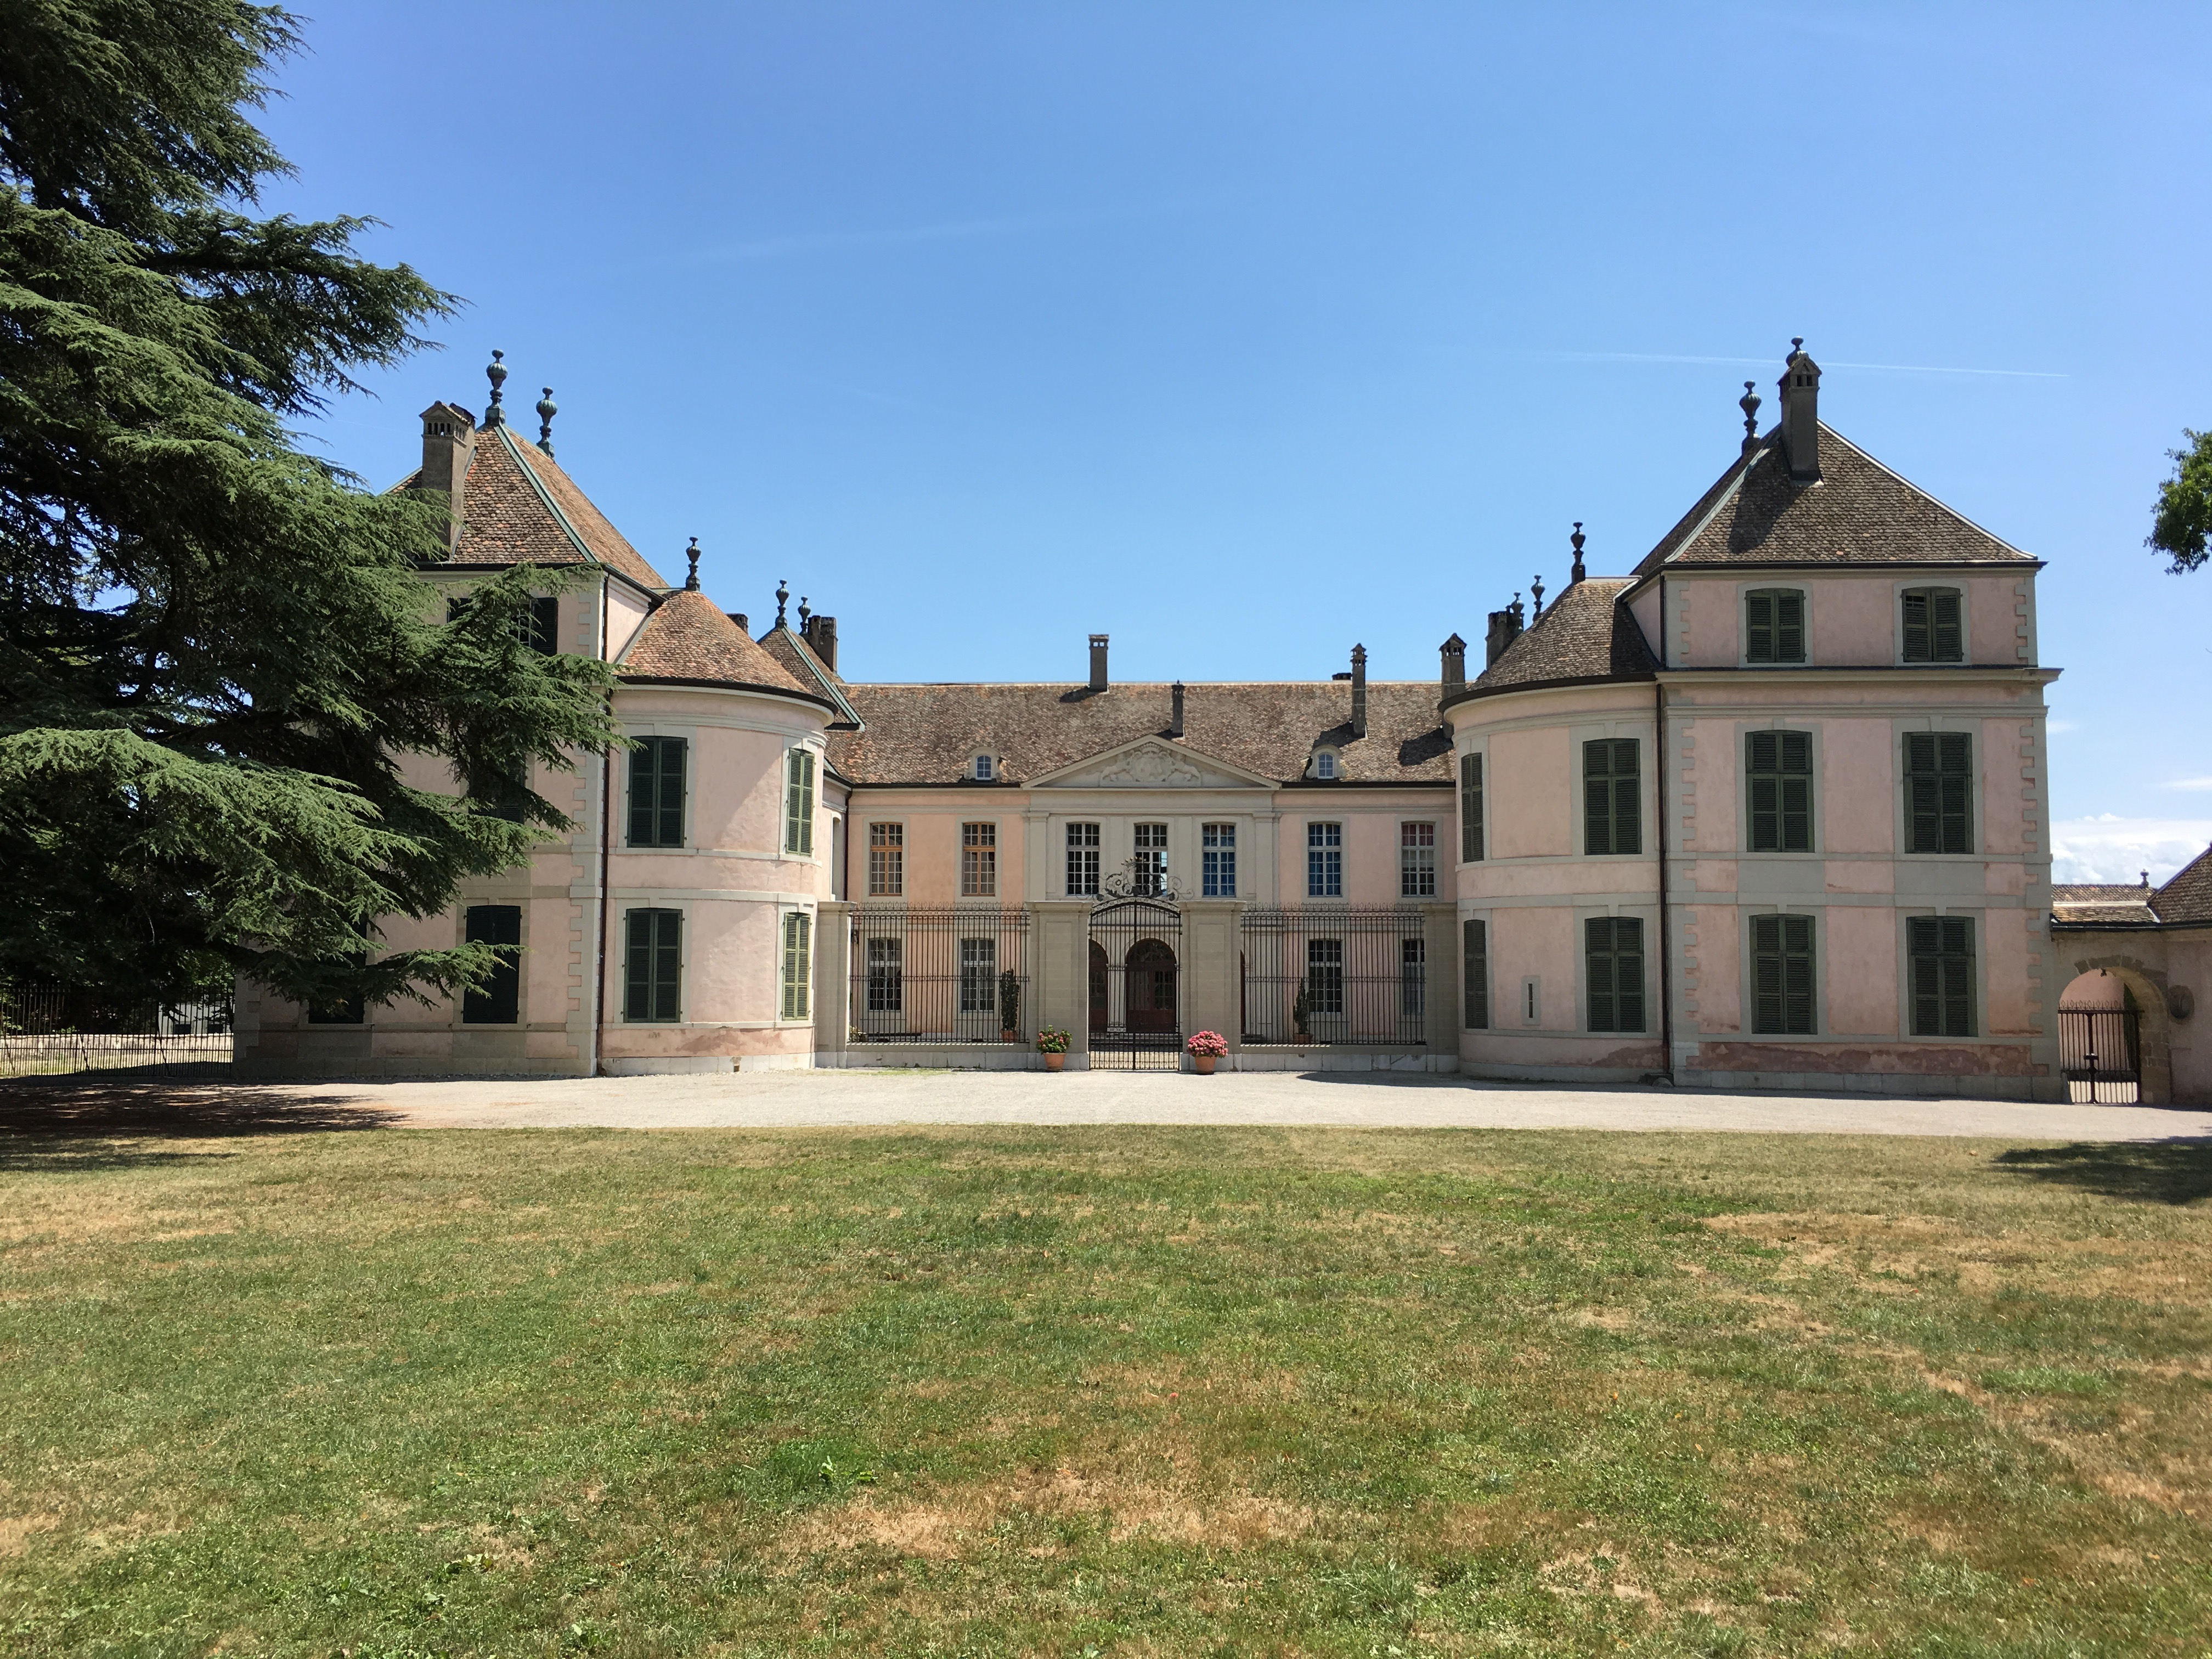 Chateau de Coppet - Source Fondation O. D'Haussonville